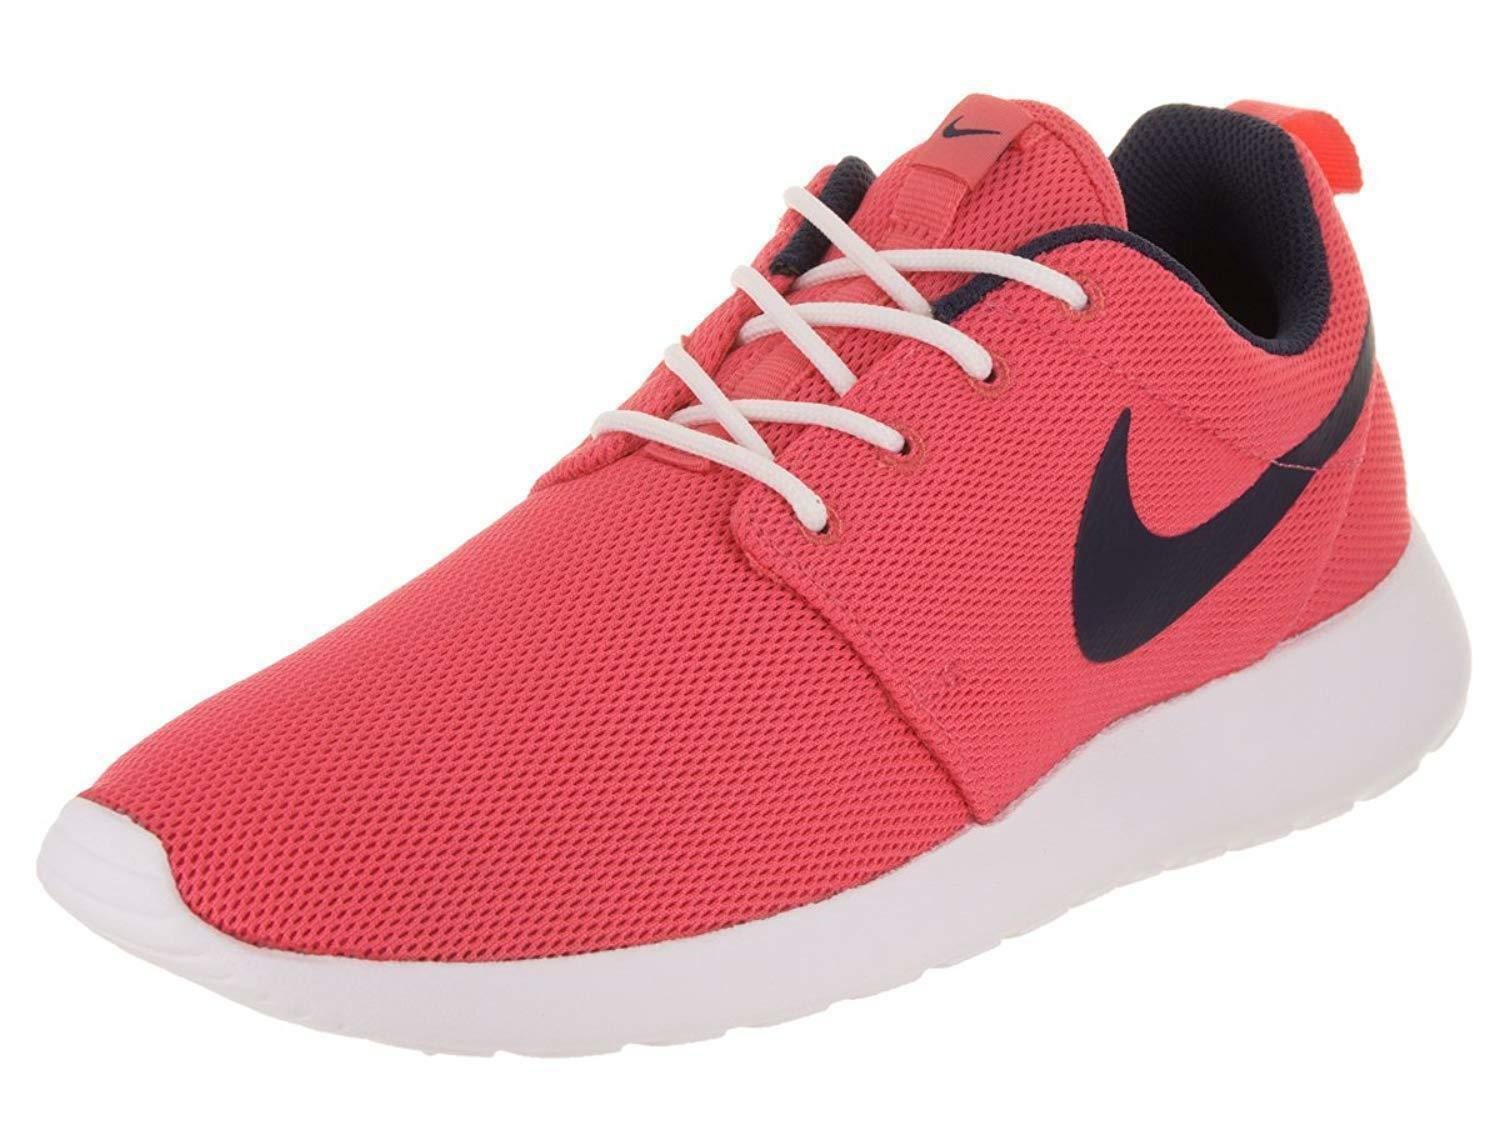 NIKE ROSHE ONE ONE ONE LOW SNEAKERS WOMEN SHOES pink BLACK 844994-801 SIZE 9 NEW 714b80